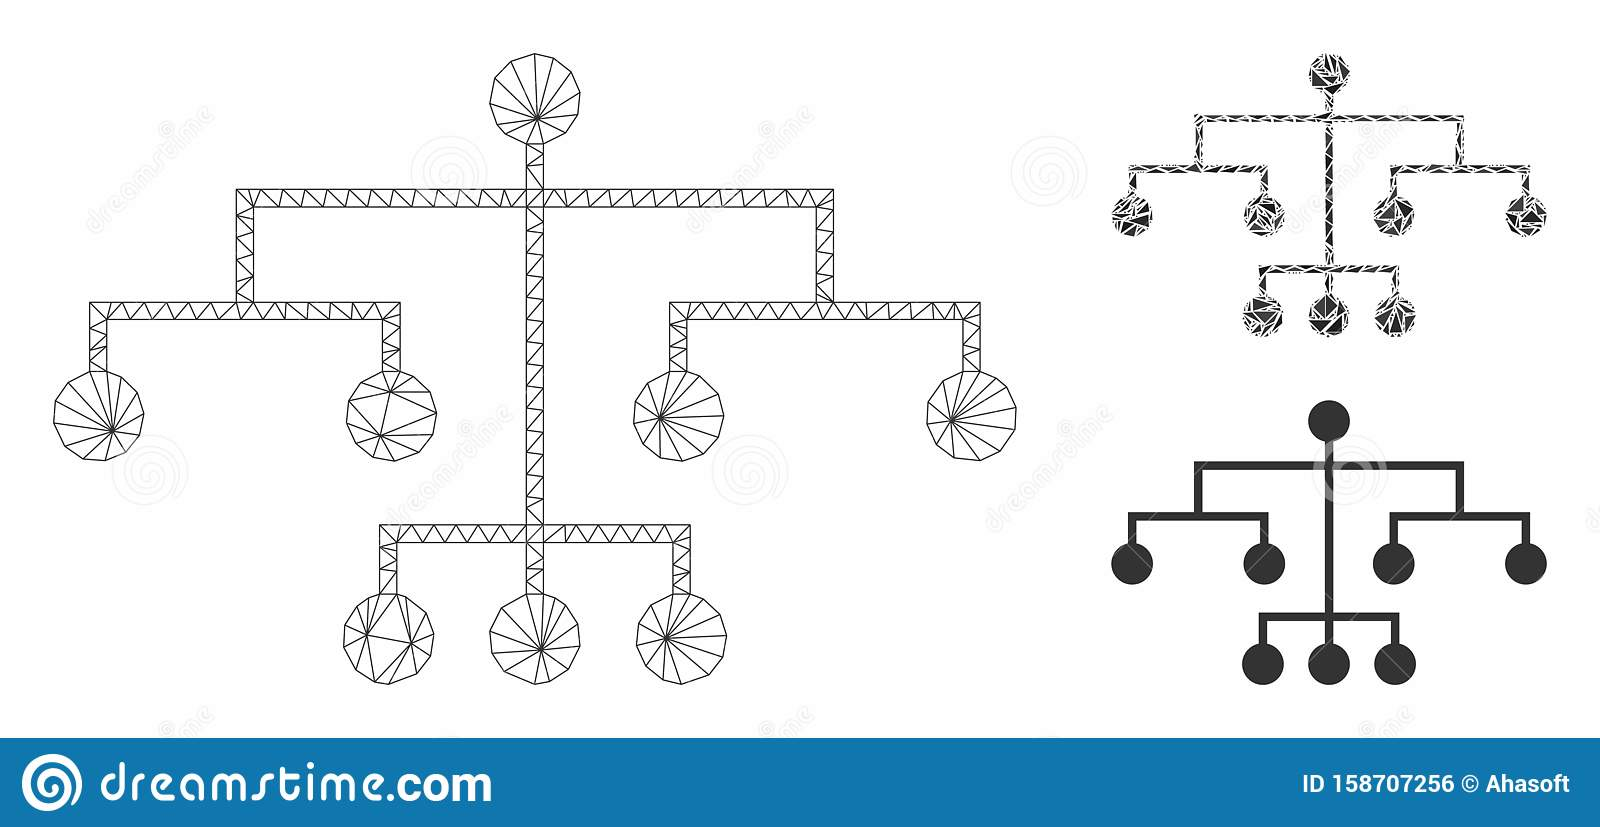 Script Tree Vector Mesh Wire Frame Model and Triangle Mosaic Icon